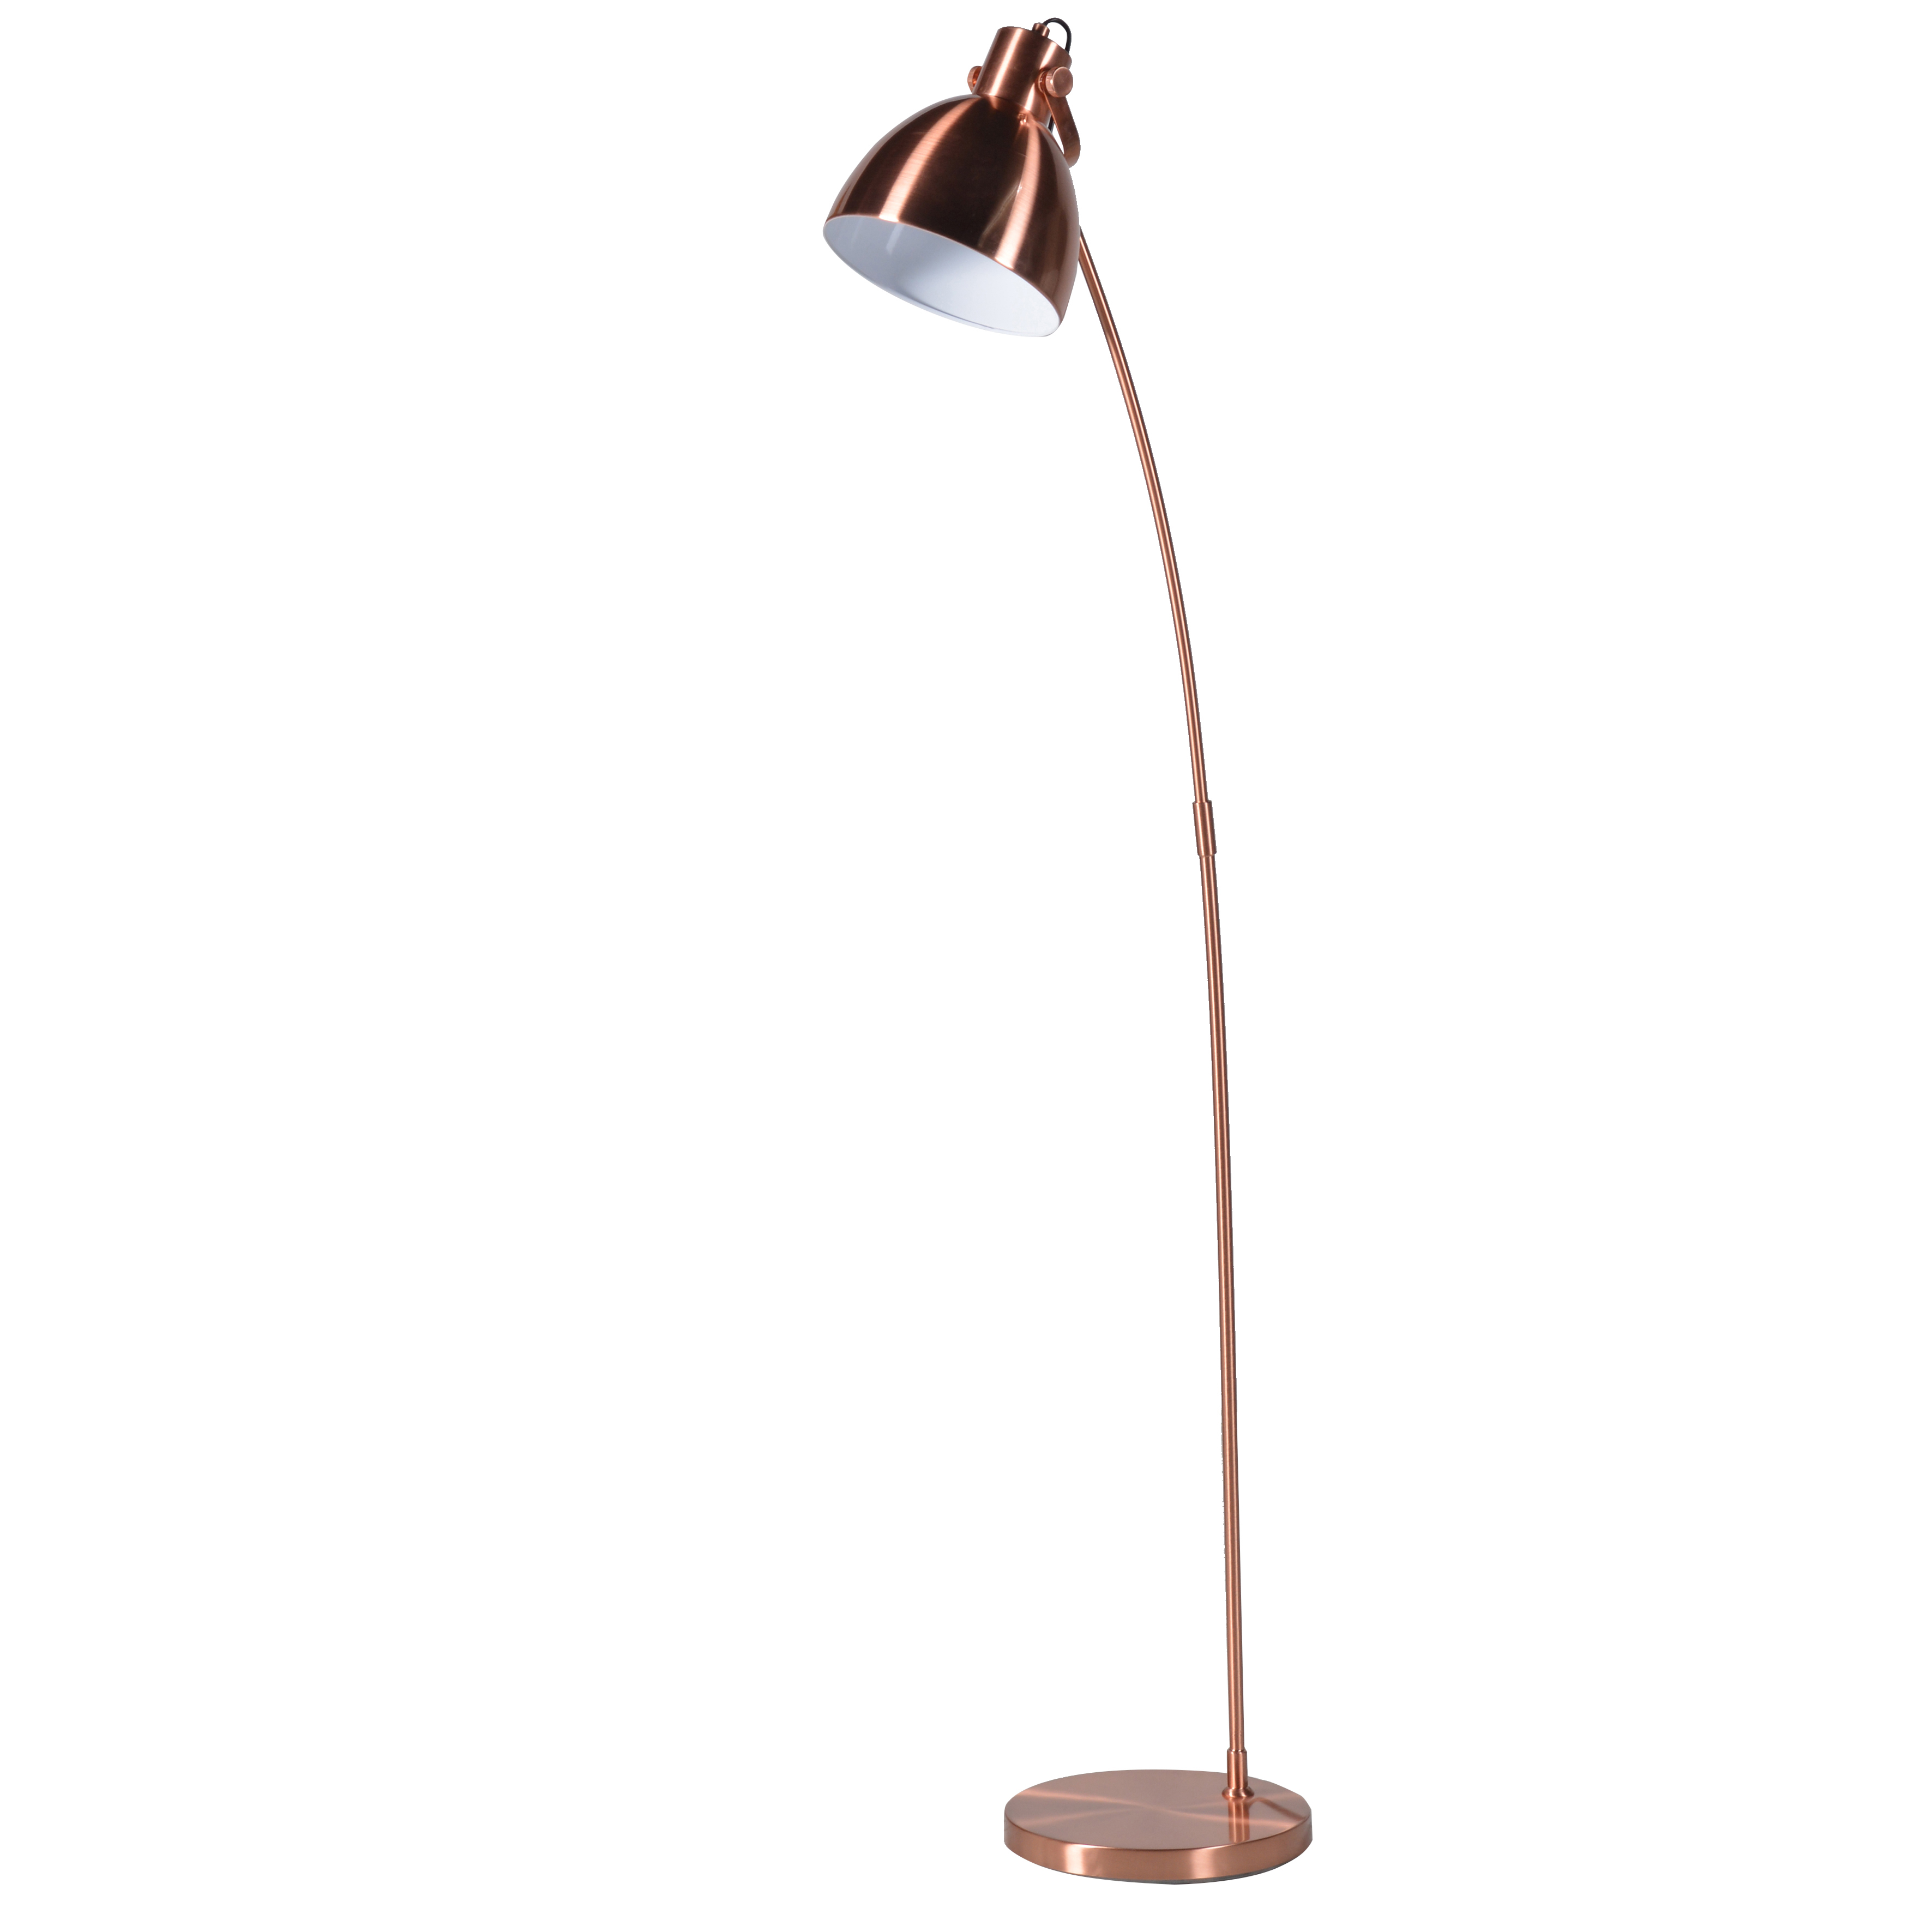 shiny copper floor lamp oliver bonas With shiny copper floor lamp